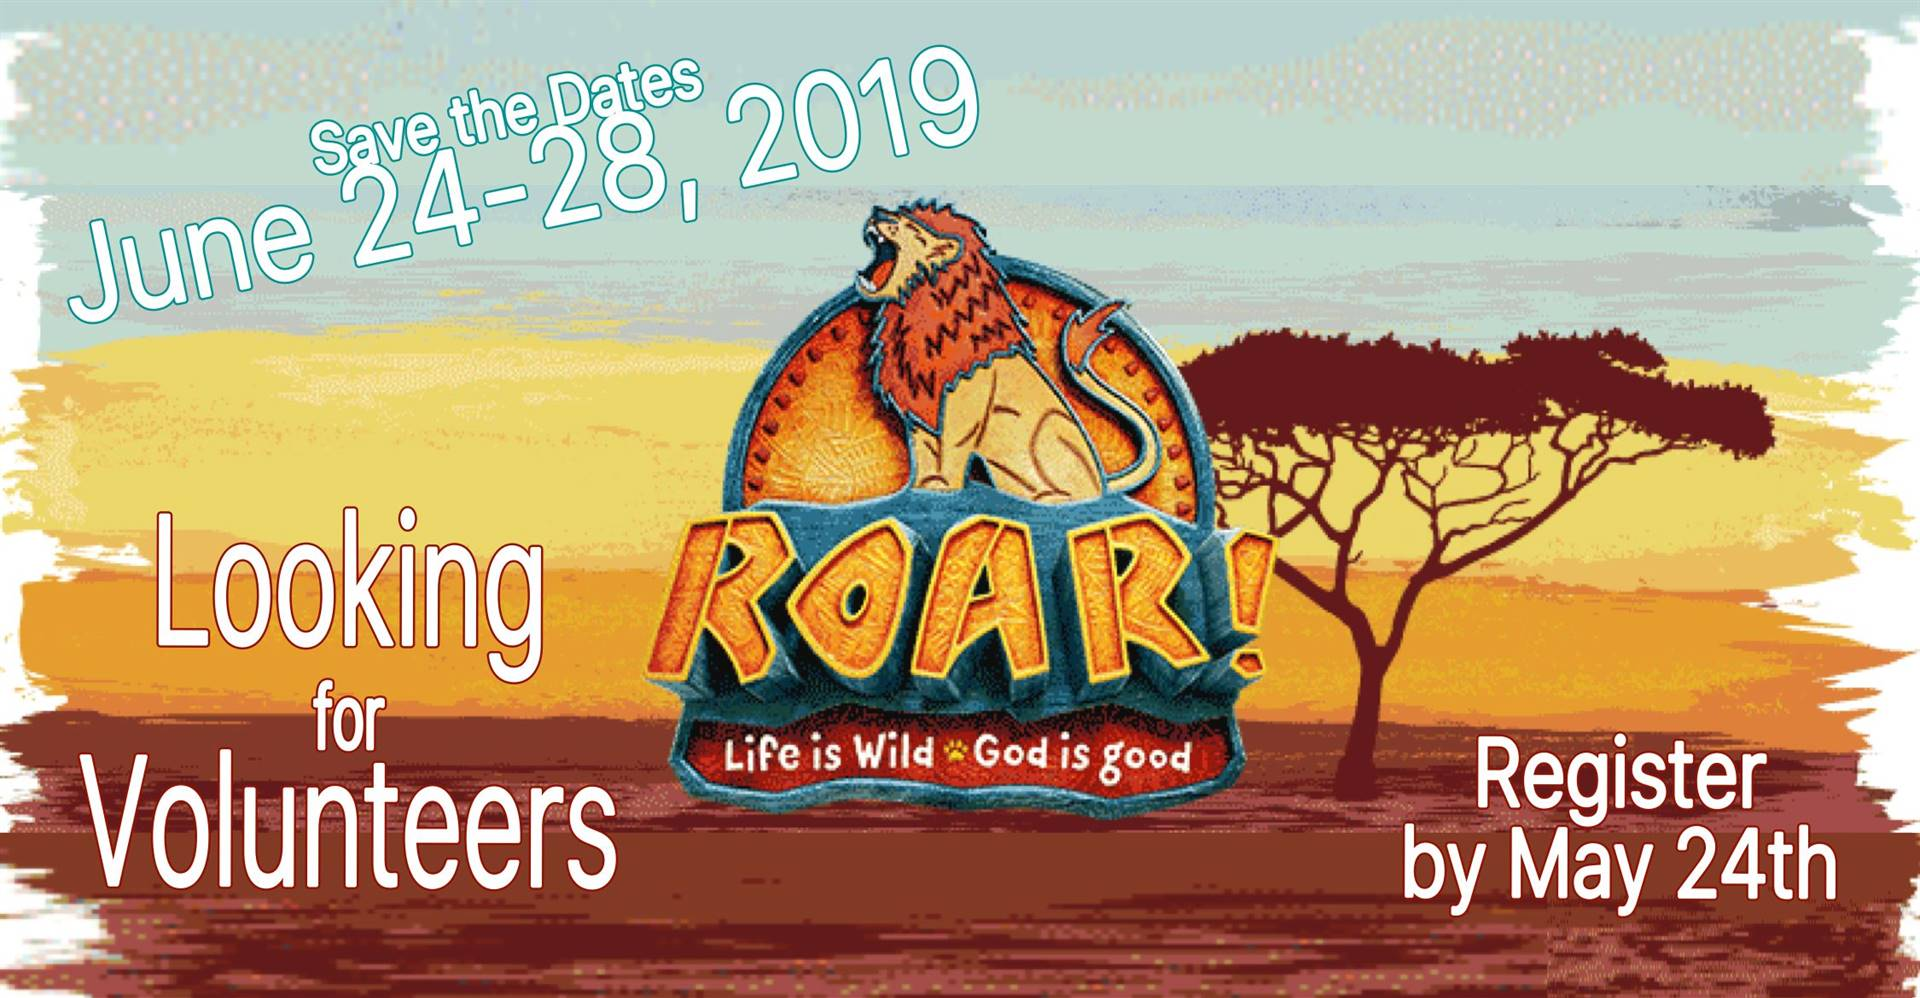 register by may 24 for vacation bible school held june 24-28